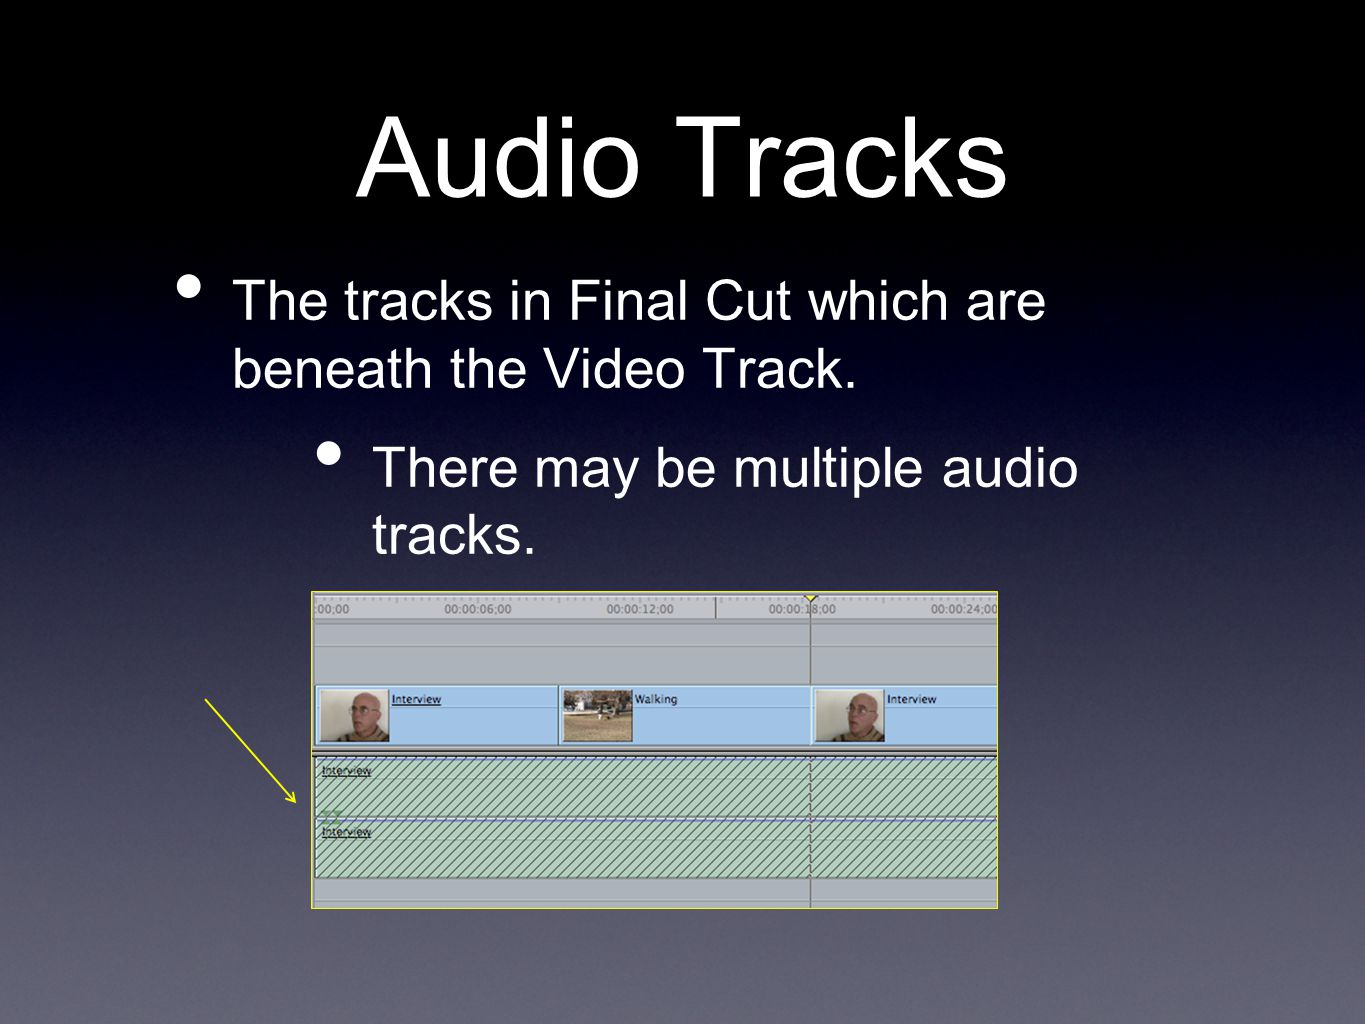 Audio Tracks The tracks in Final Cut which are beneath the Video Track.